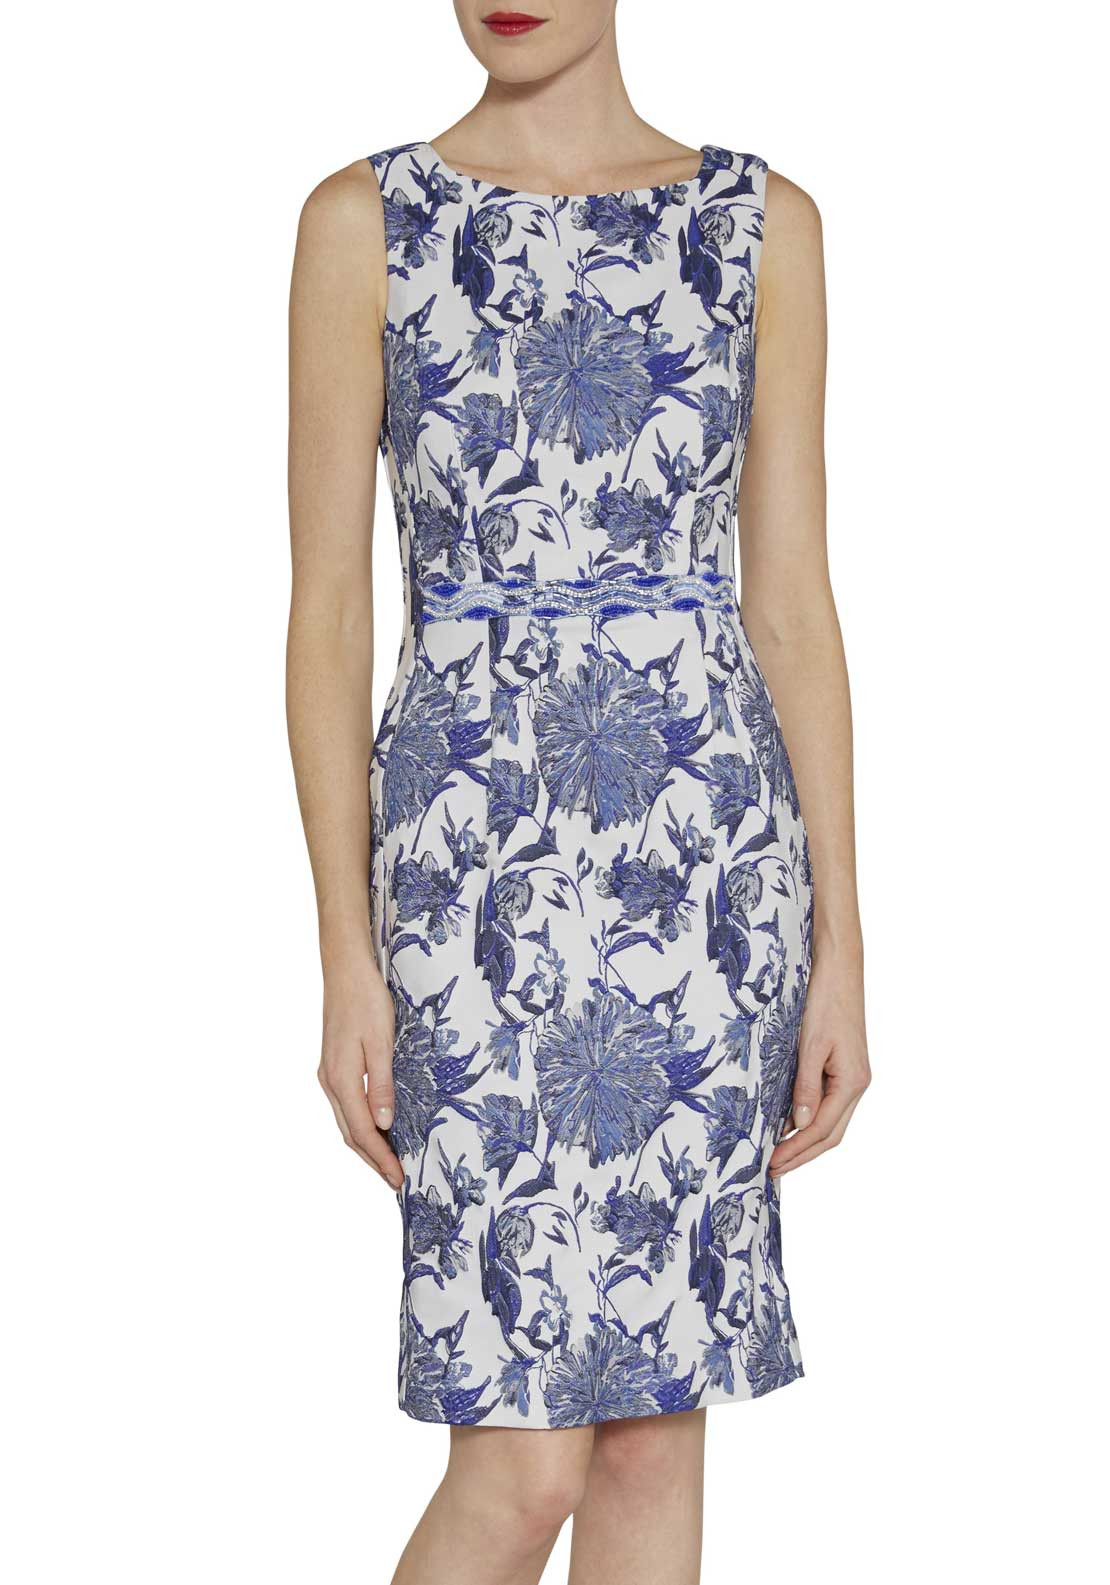 Gina Bacconi Woven Floral Print Sleeveless Pencil Dress, Blue and White